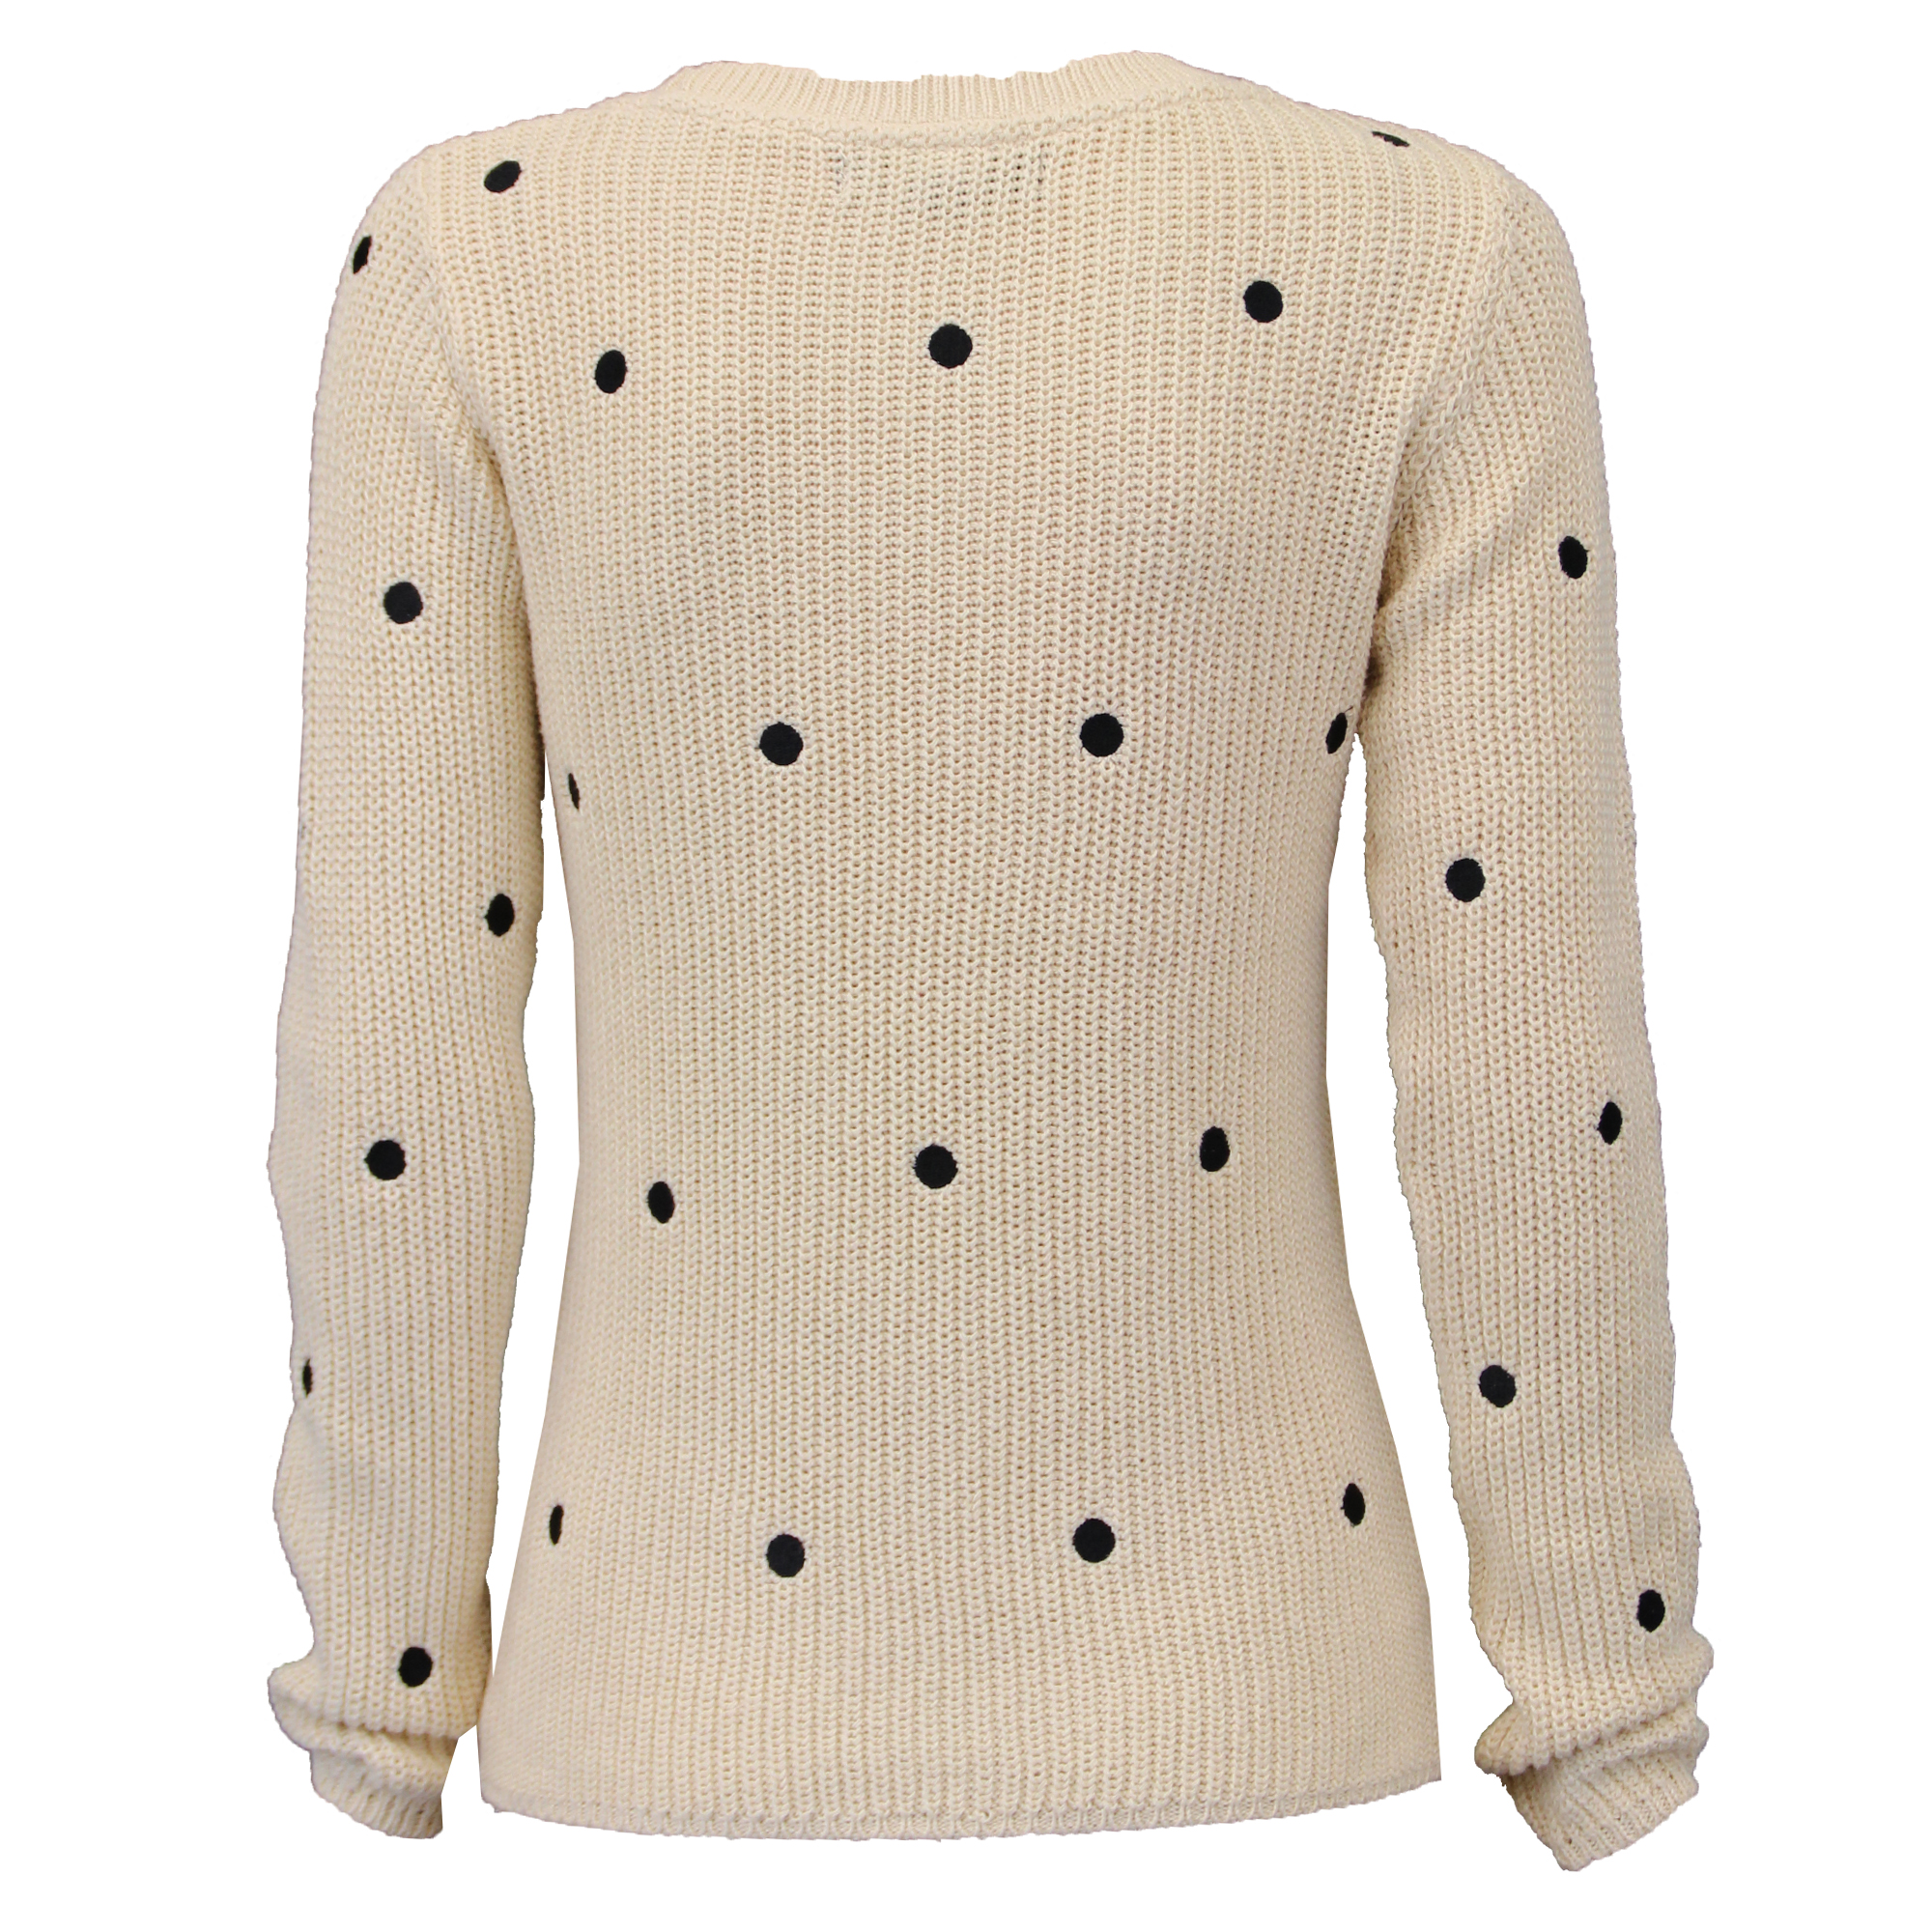 Ladies Jumpers Womens Knitted Top Pullover Sweater Polka Dot Amara ... 73547153c